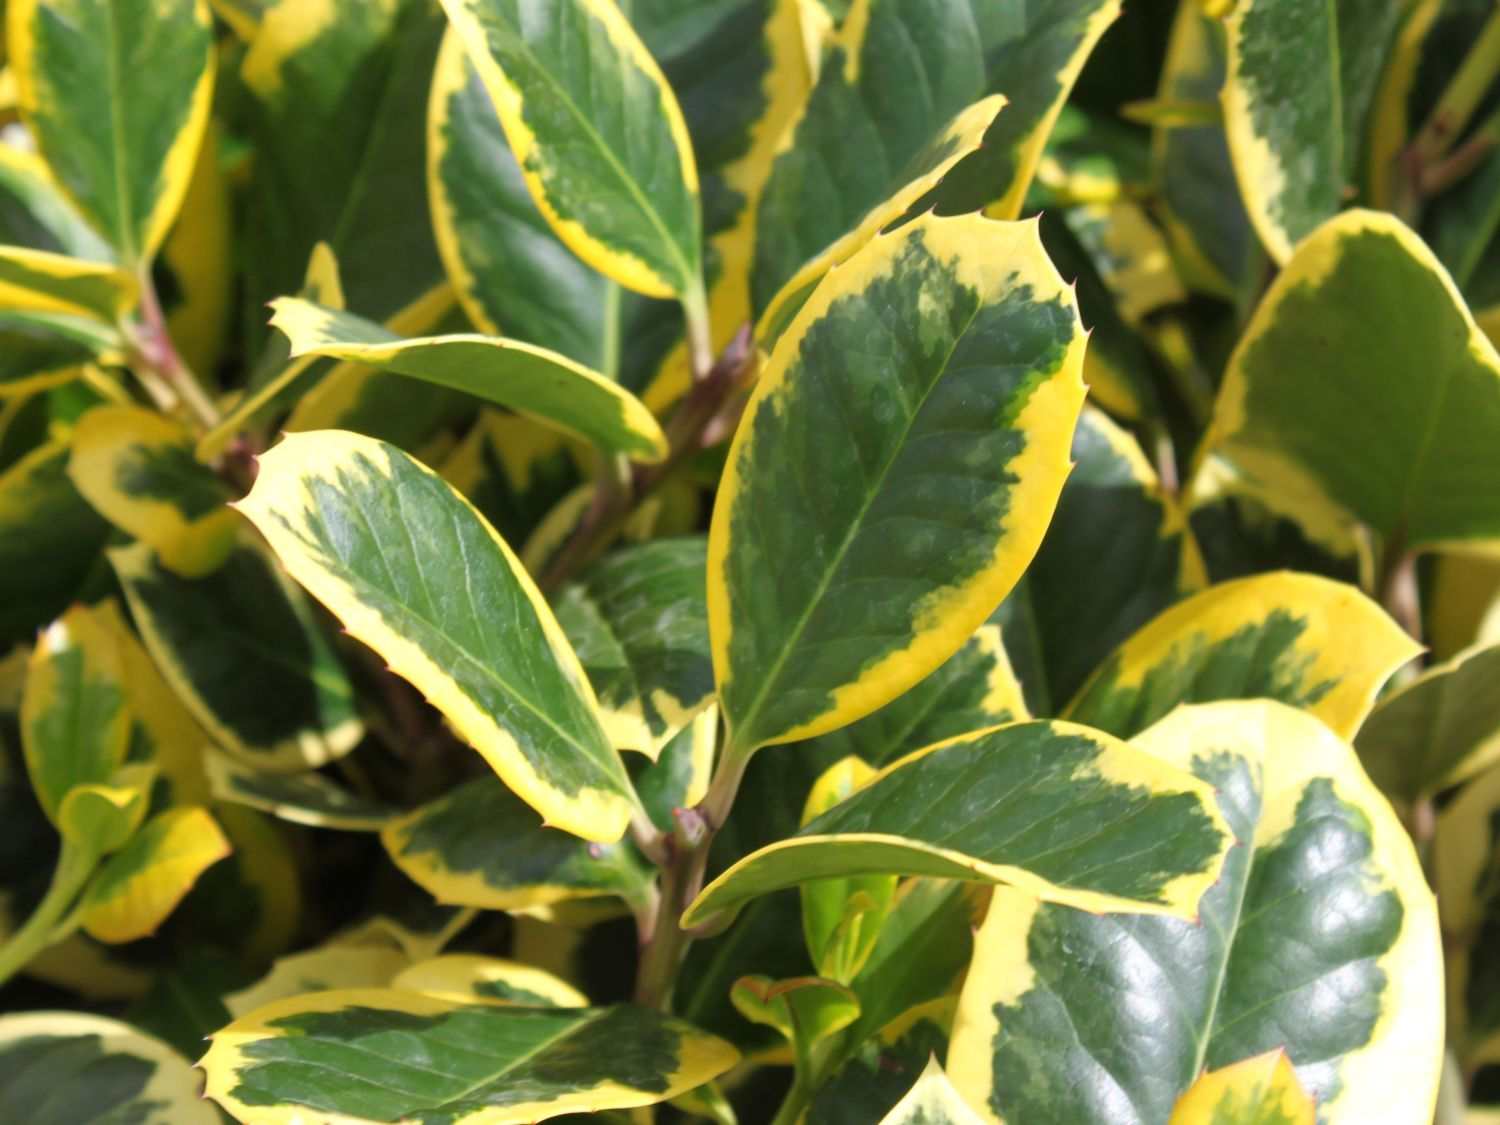 grossblaettrige stechpalme golden king ilex